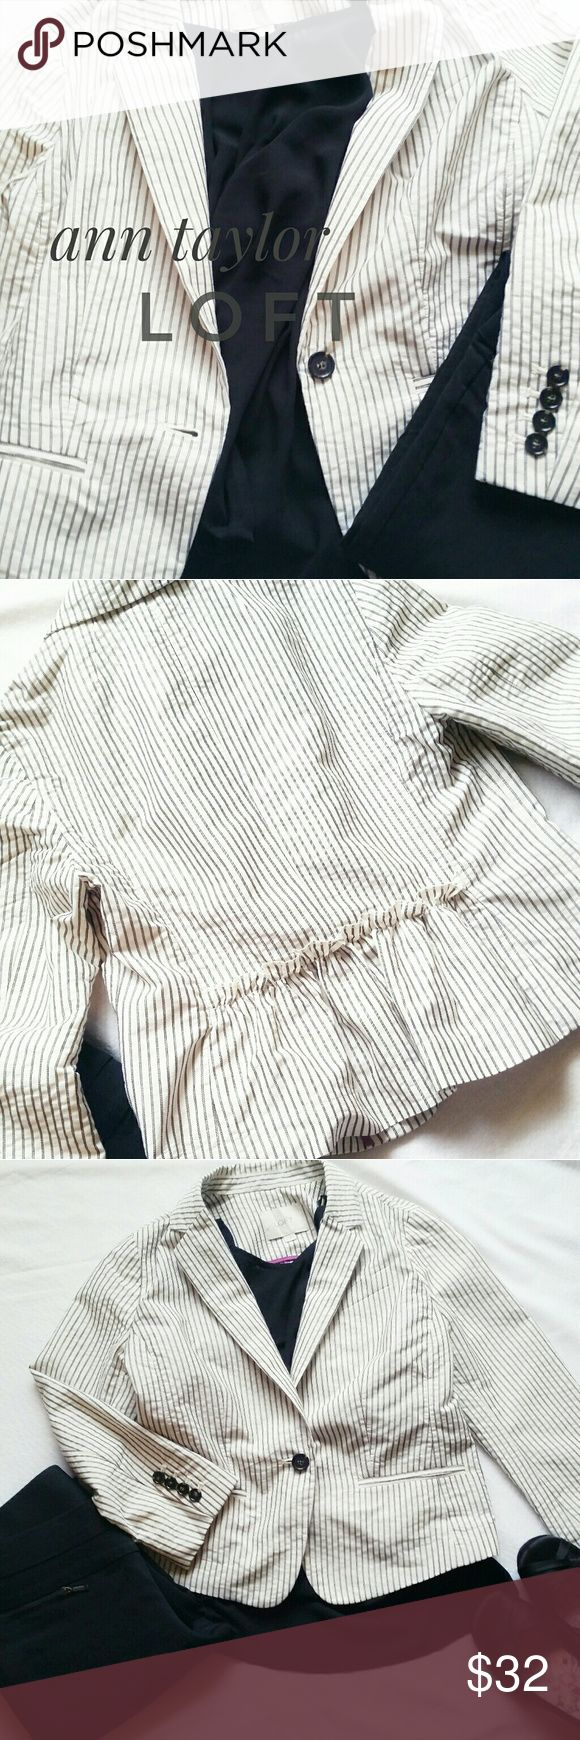 LOFT pinstripe blazer Such a cute blazer! White with a gray pinstripe, size 4p, 3/4 length sleeves. One button closure, 4 buttons on each sleeve. The back is gathered and has an adorable ruffle. Excellent preloved condition.   Perfect for spring! LOFT Jackets & Coats Blazers